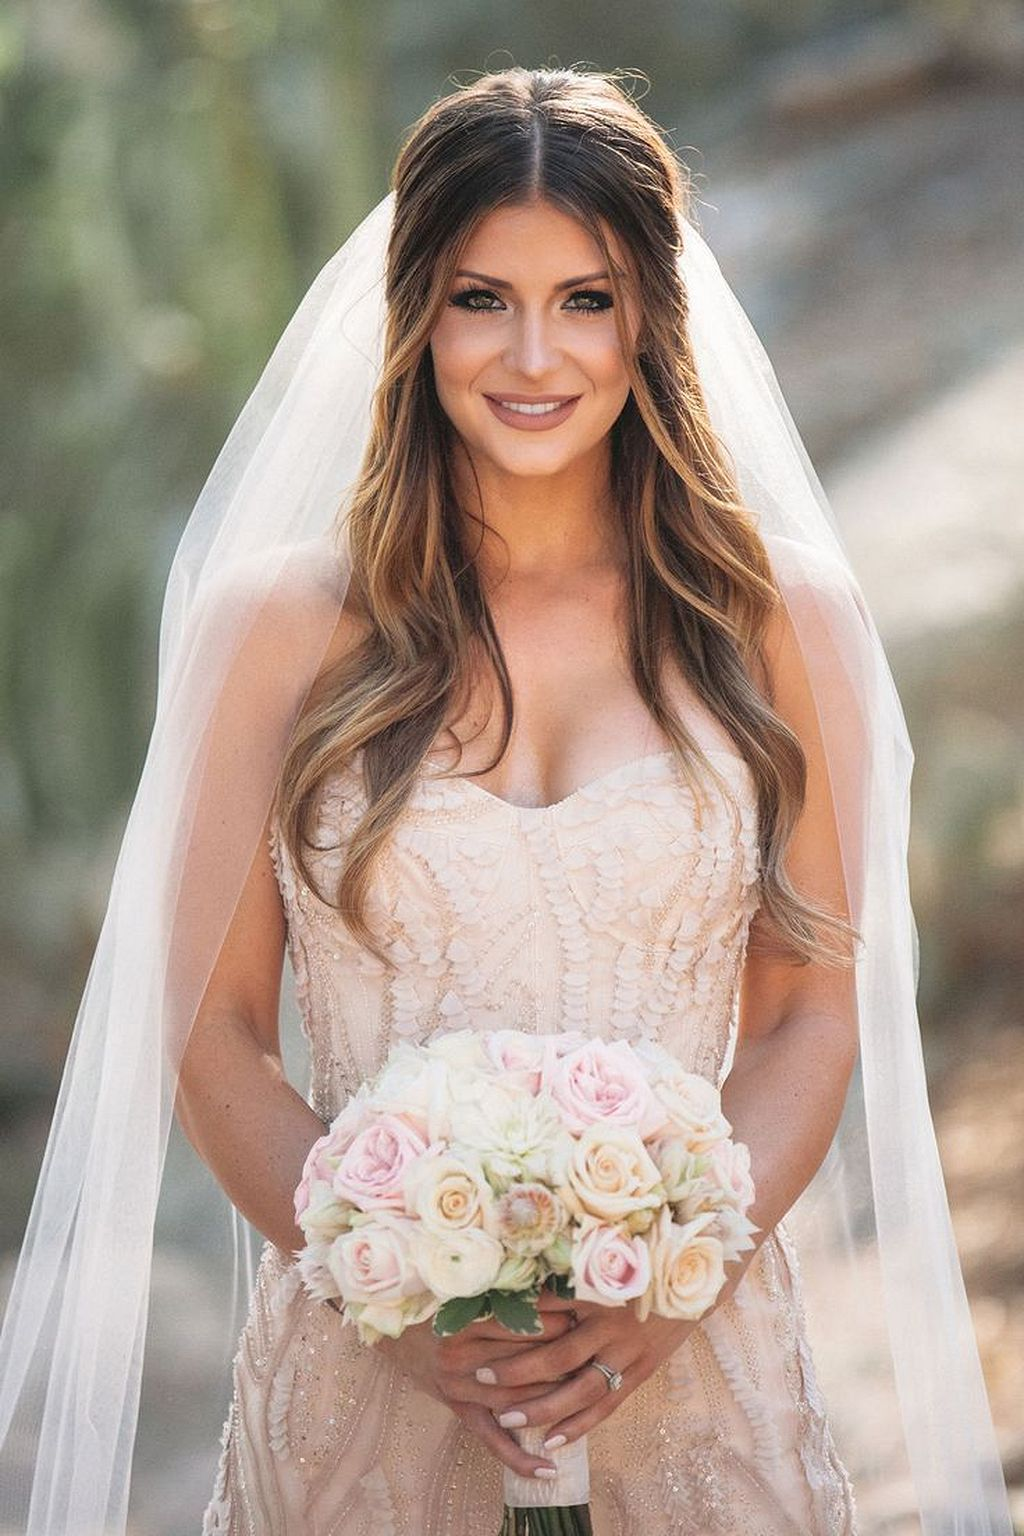 Wedding Hairstyles Down 40 Wedding Hair Down With Veil Ideas  Veil Wedding And Wedding Make Up